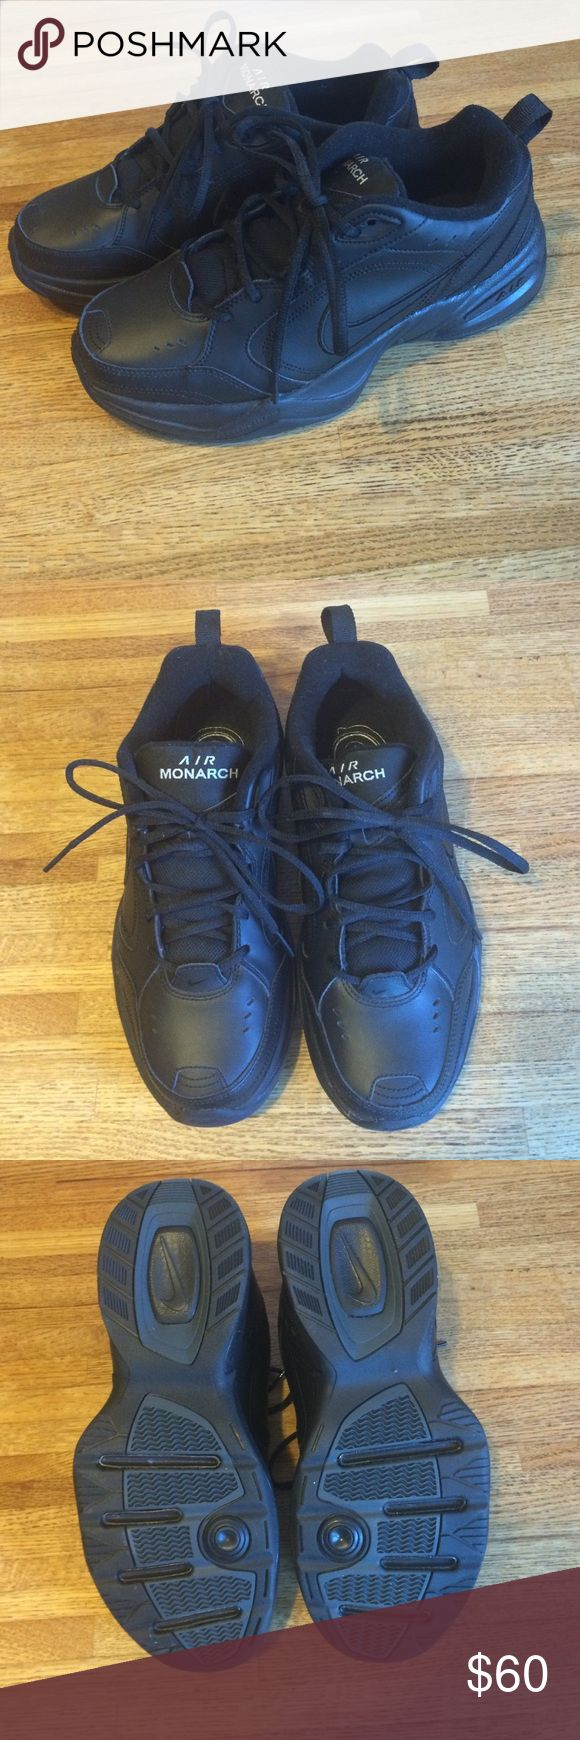 Nike air monarch sneakers All black nike sneaker with black laces. Air monarch, full length air. My dad got these but never even wore them, just don't have the box. These are brand new so I'm pretty firm on the price but will accept reasonable offers. Nike Shoes Athletic Shoes